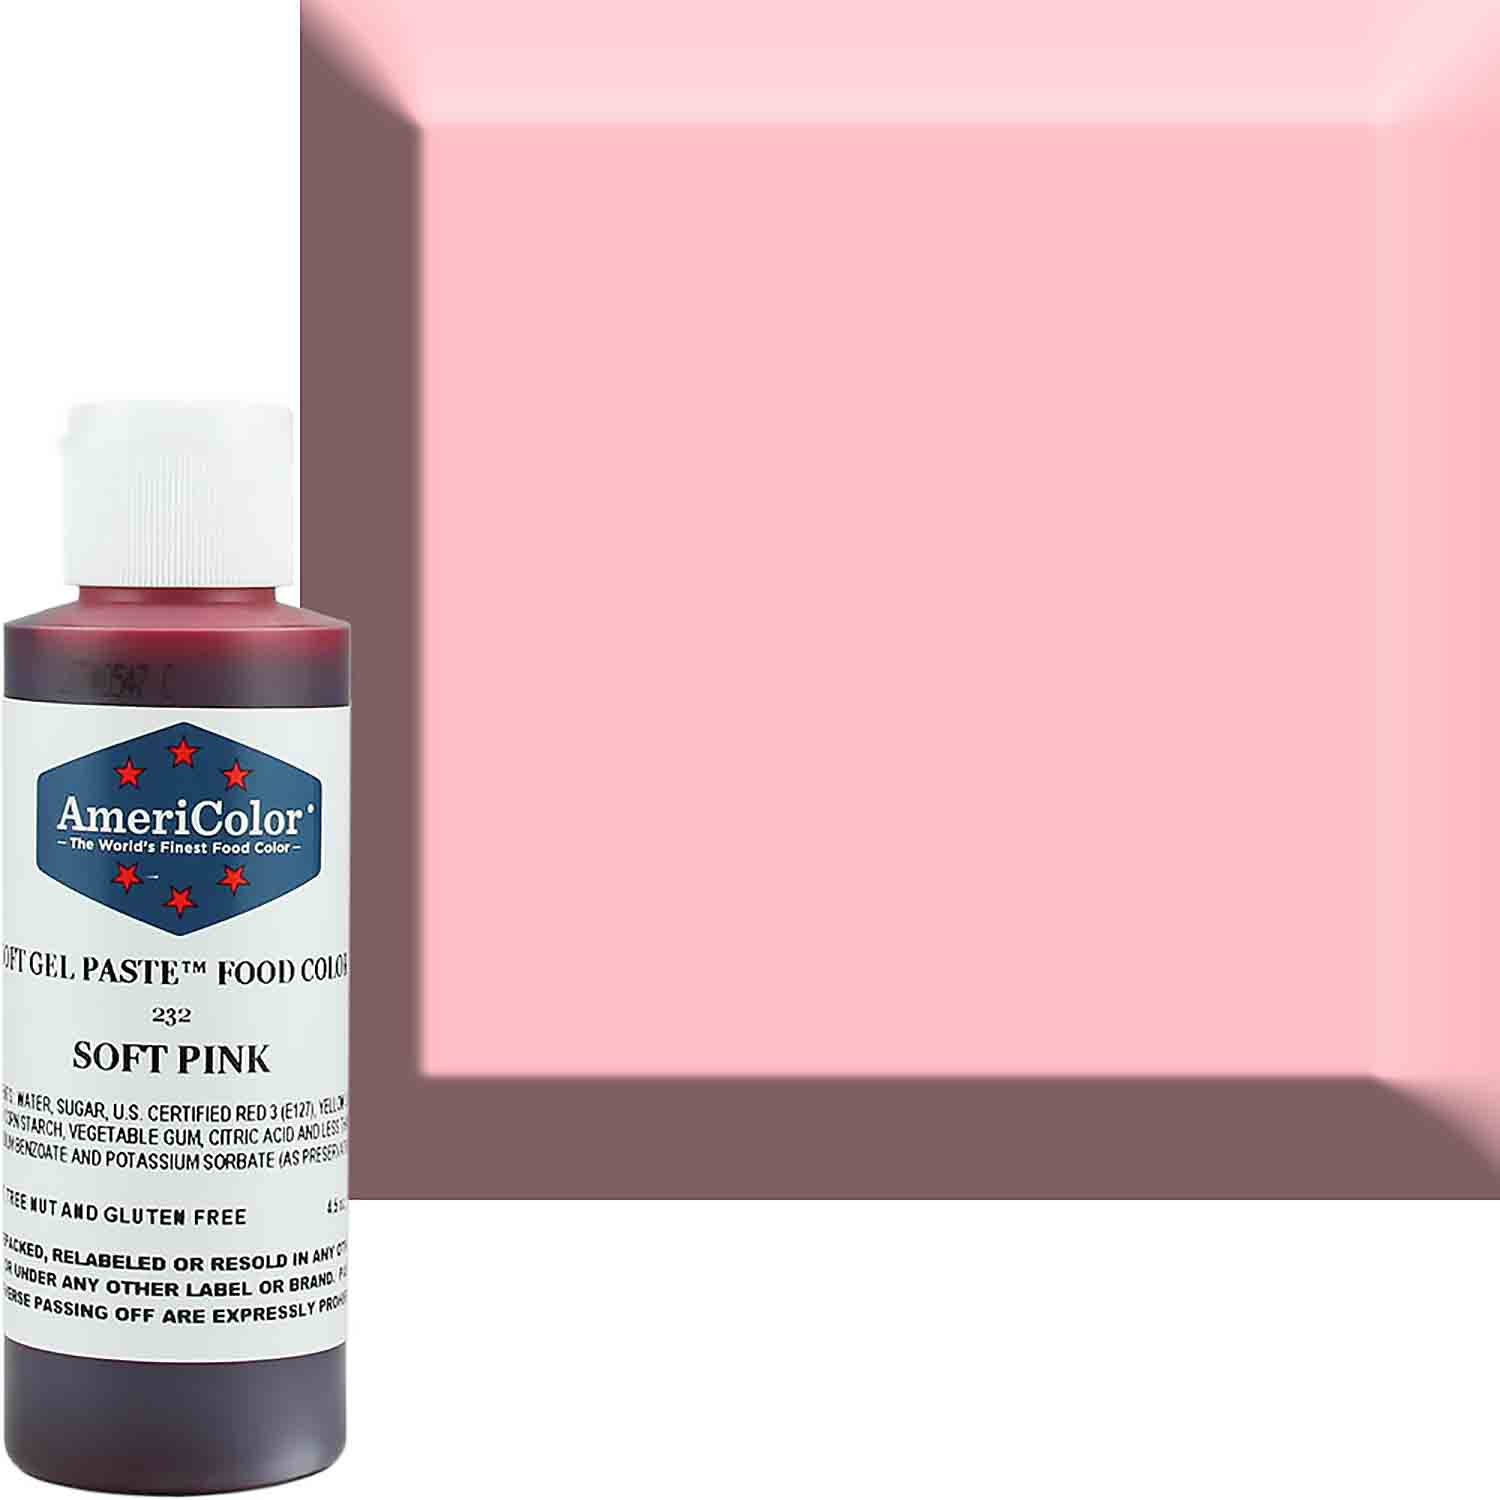 Soft Pink Soft Gel Paste™ Food Color